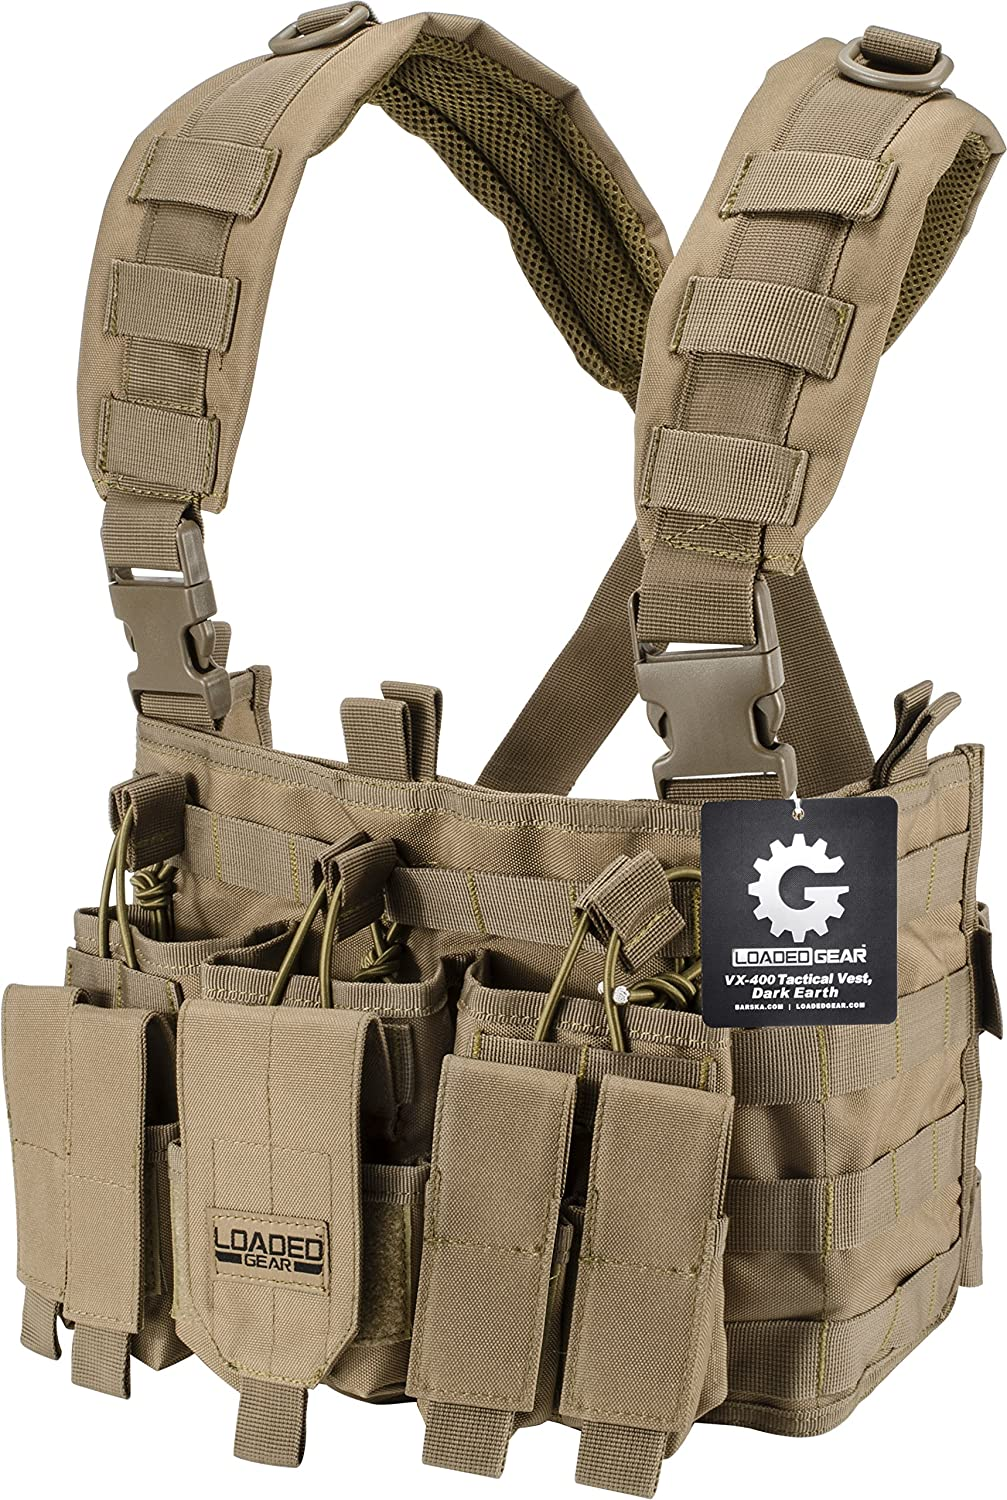 Loaded Phoenix Mall Gear Chest Rig Vest Breathable Max 41% OFF Law Enforcement Comba